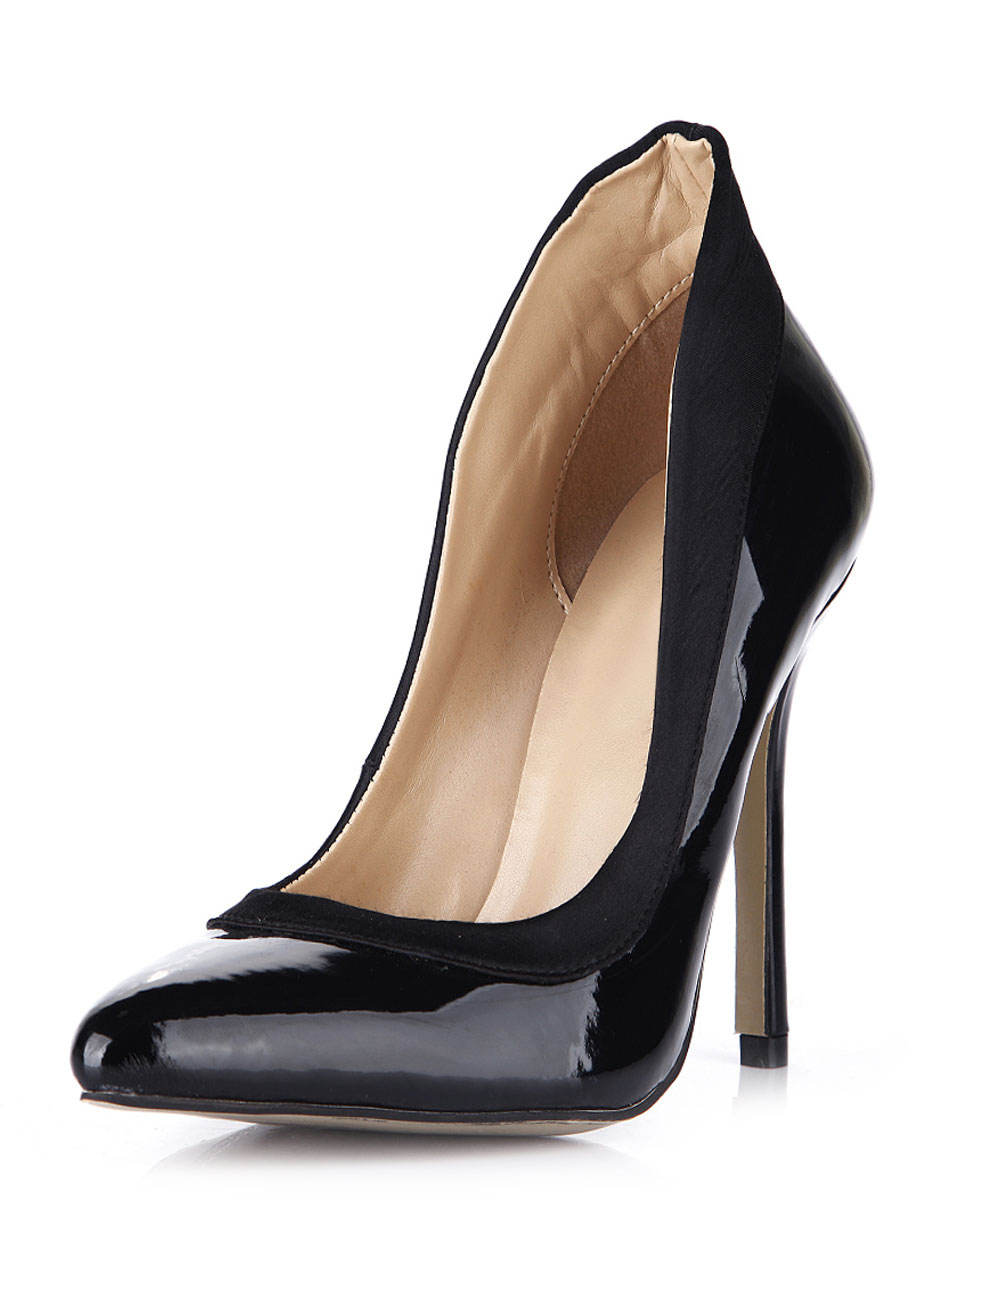 Buy Popular Black Stiletto Heel Patent PU Womens Pointy Toe Heels for $56.04 in Milanoo store